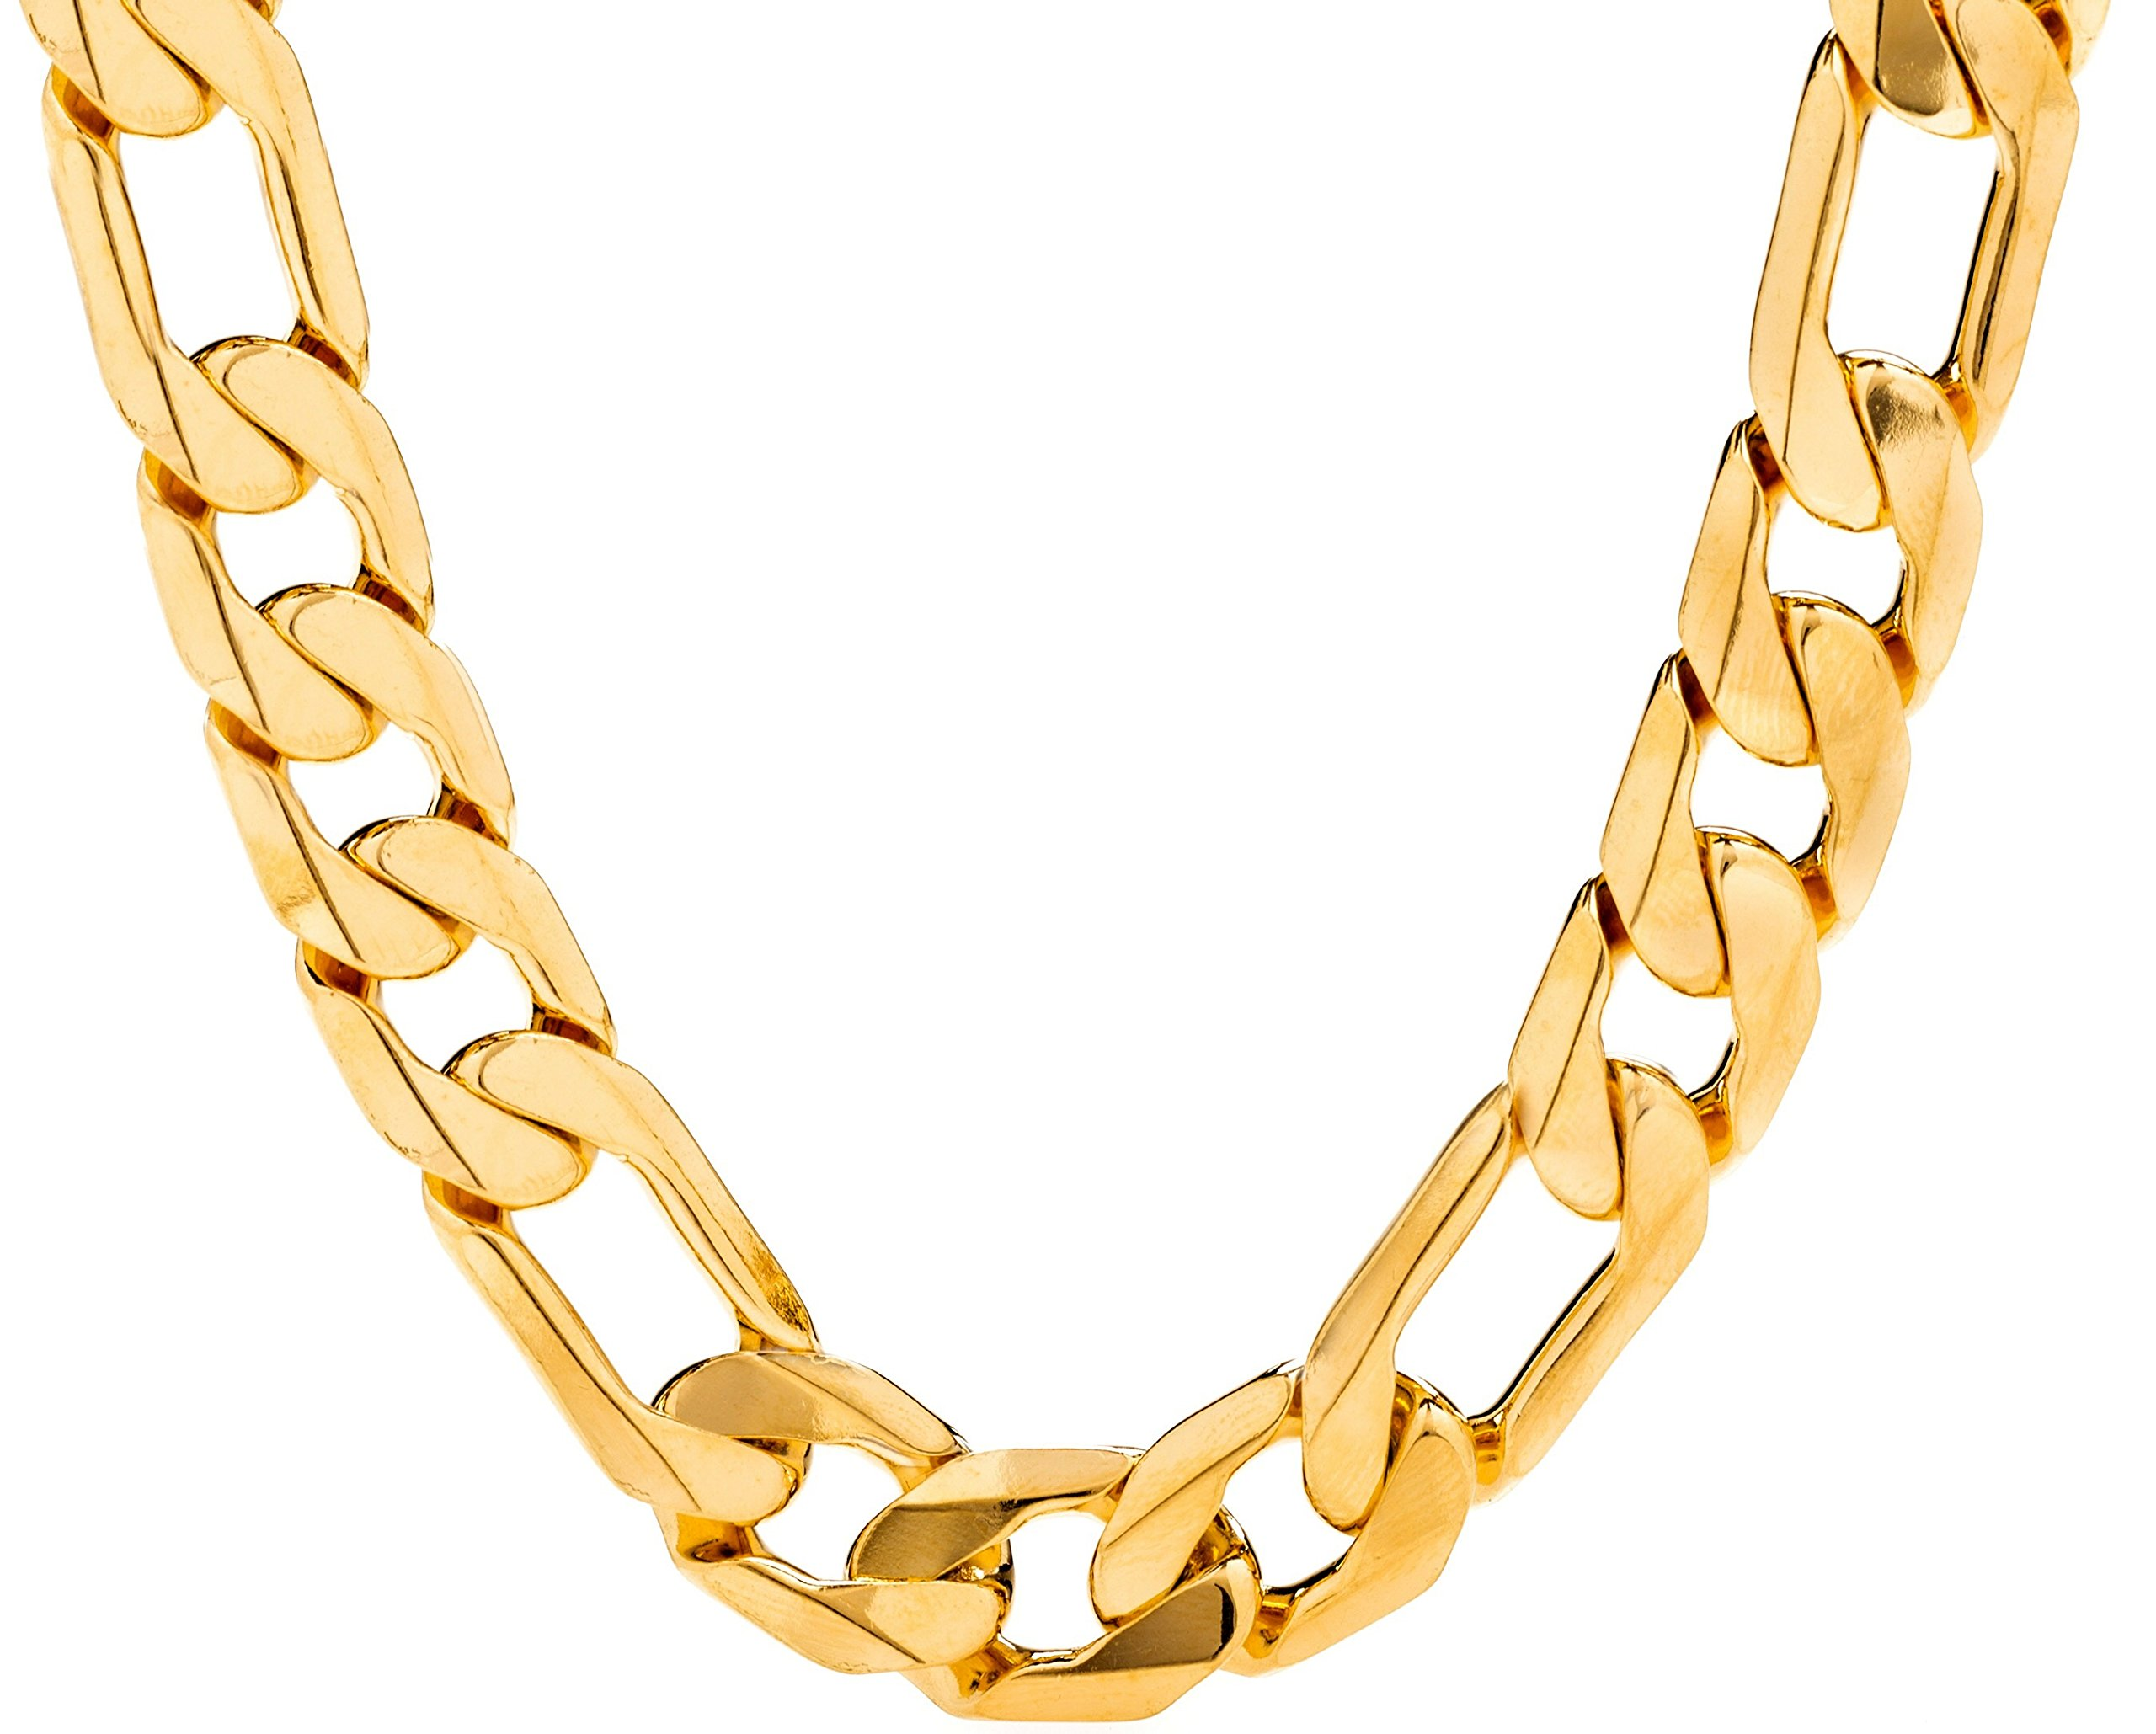 Lifetime Jewelry Figaro Chain 11MM, 24K Gold Over Semi-Precious Metals, Premium Fashion Jewelry, Hip Hop, Comes in a Box or Pouch for Gifts, Guaranteed for Life, Long, 30 Inches